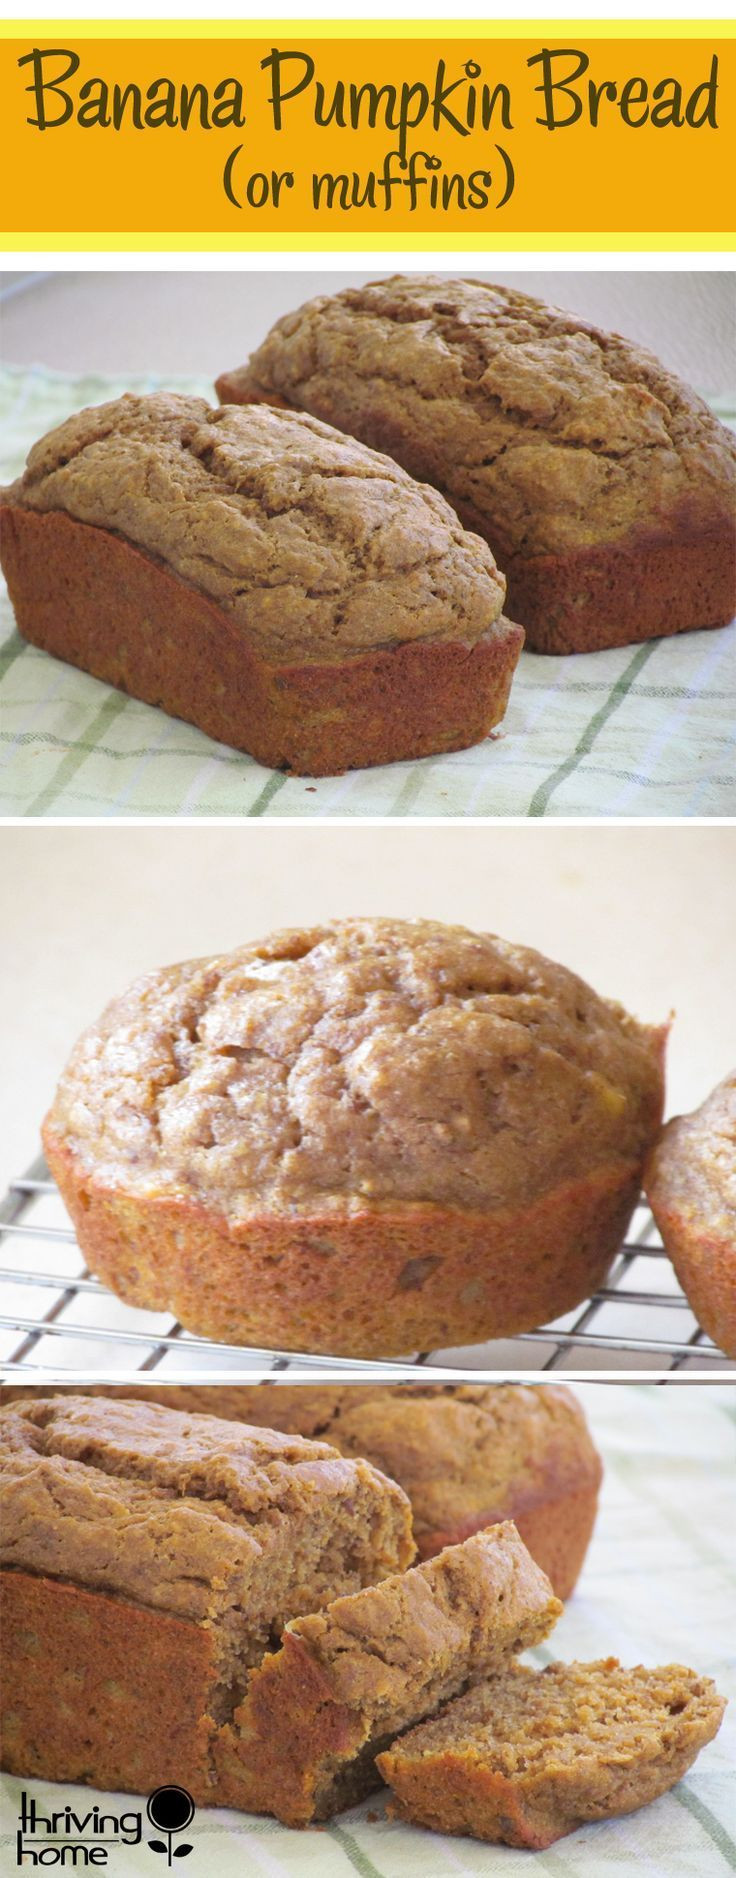 Healthy Banana Pumpkin Bread With Applesauce  Banana Pumpkin Bread or Muffins Recipe